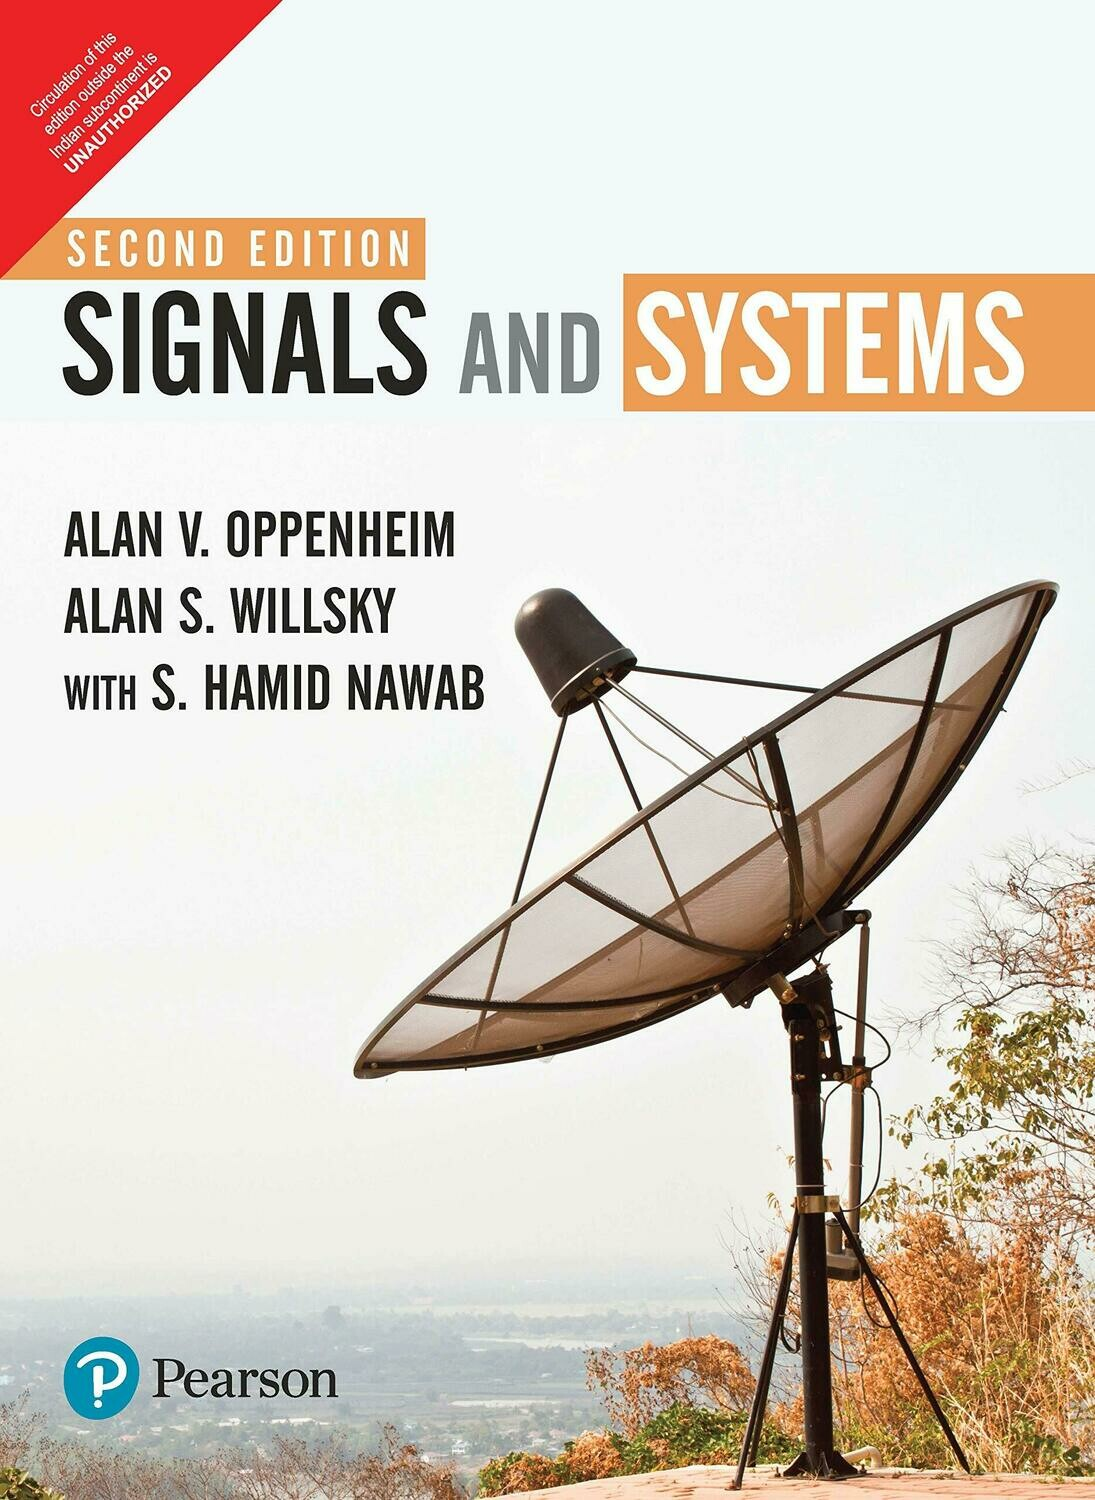 Signals and Systems   Second Edition by Oppenheim/Willsky/Hamid   1 January 2015